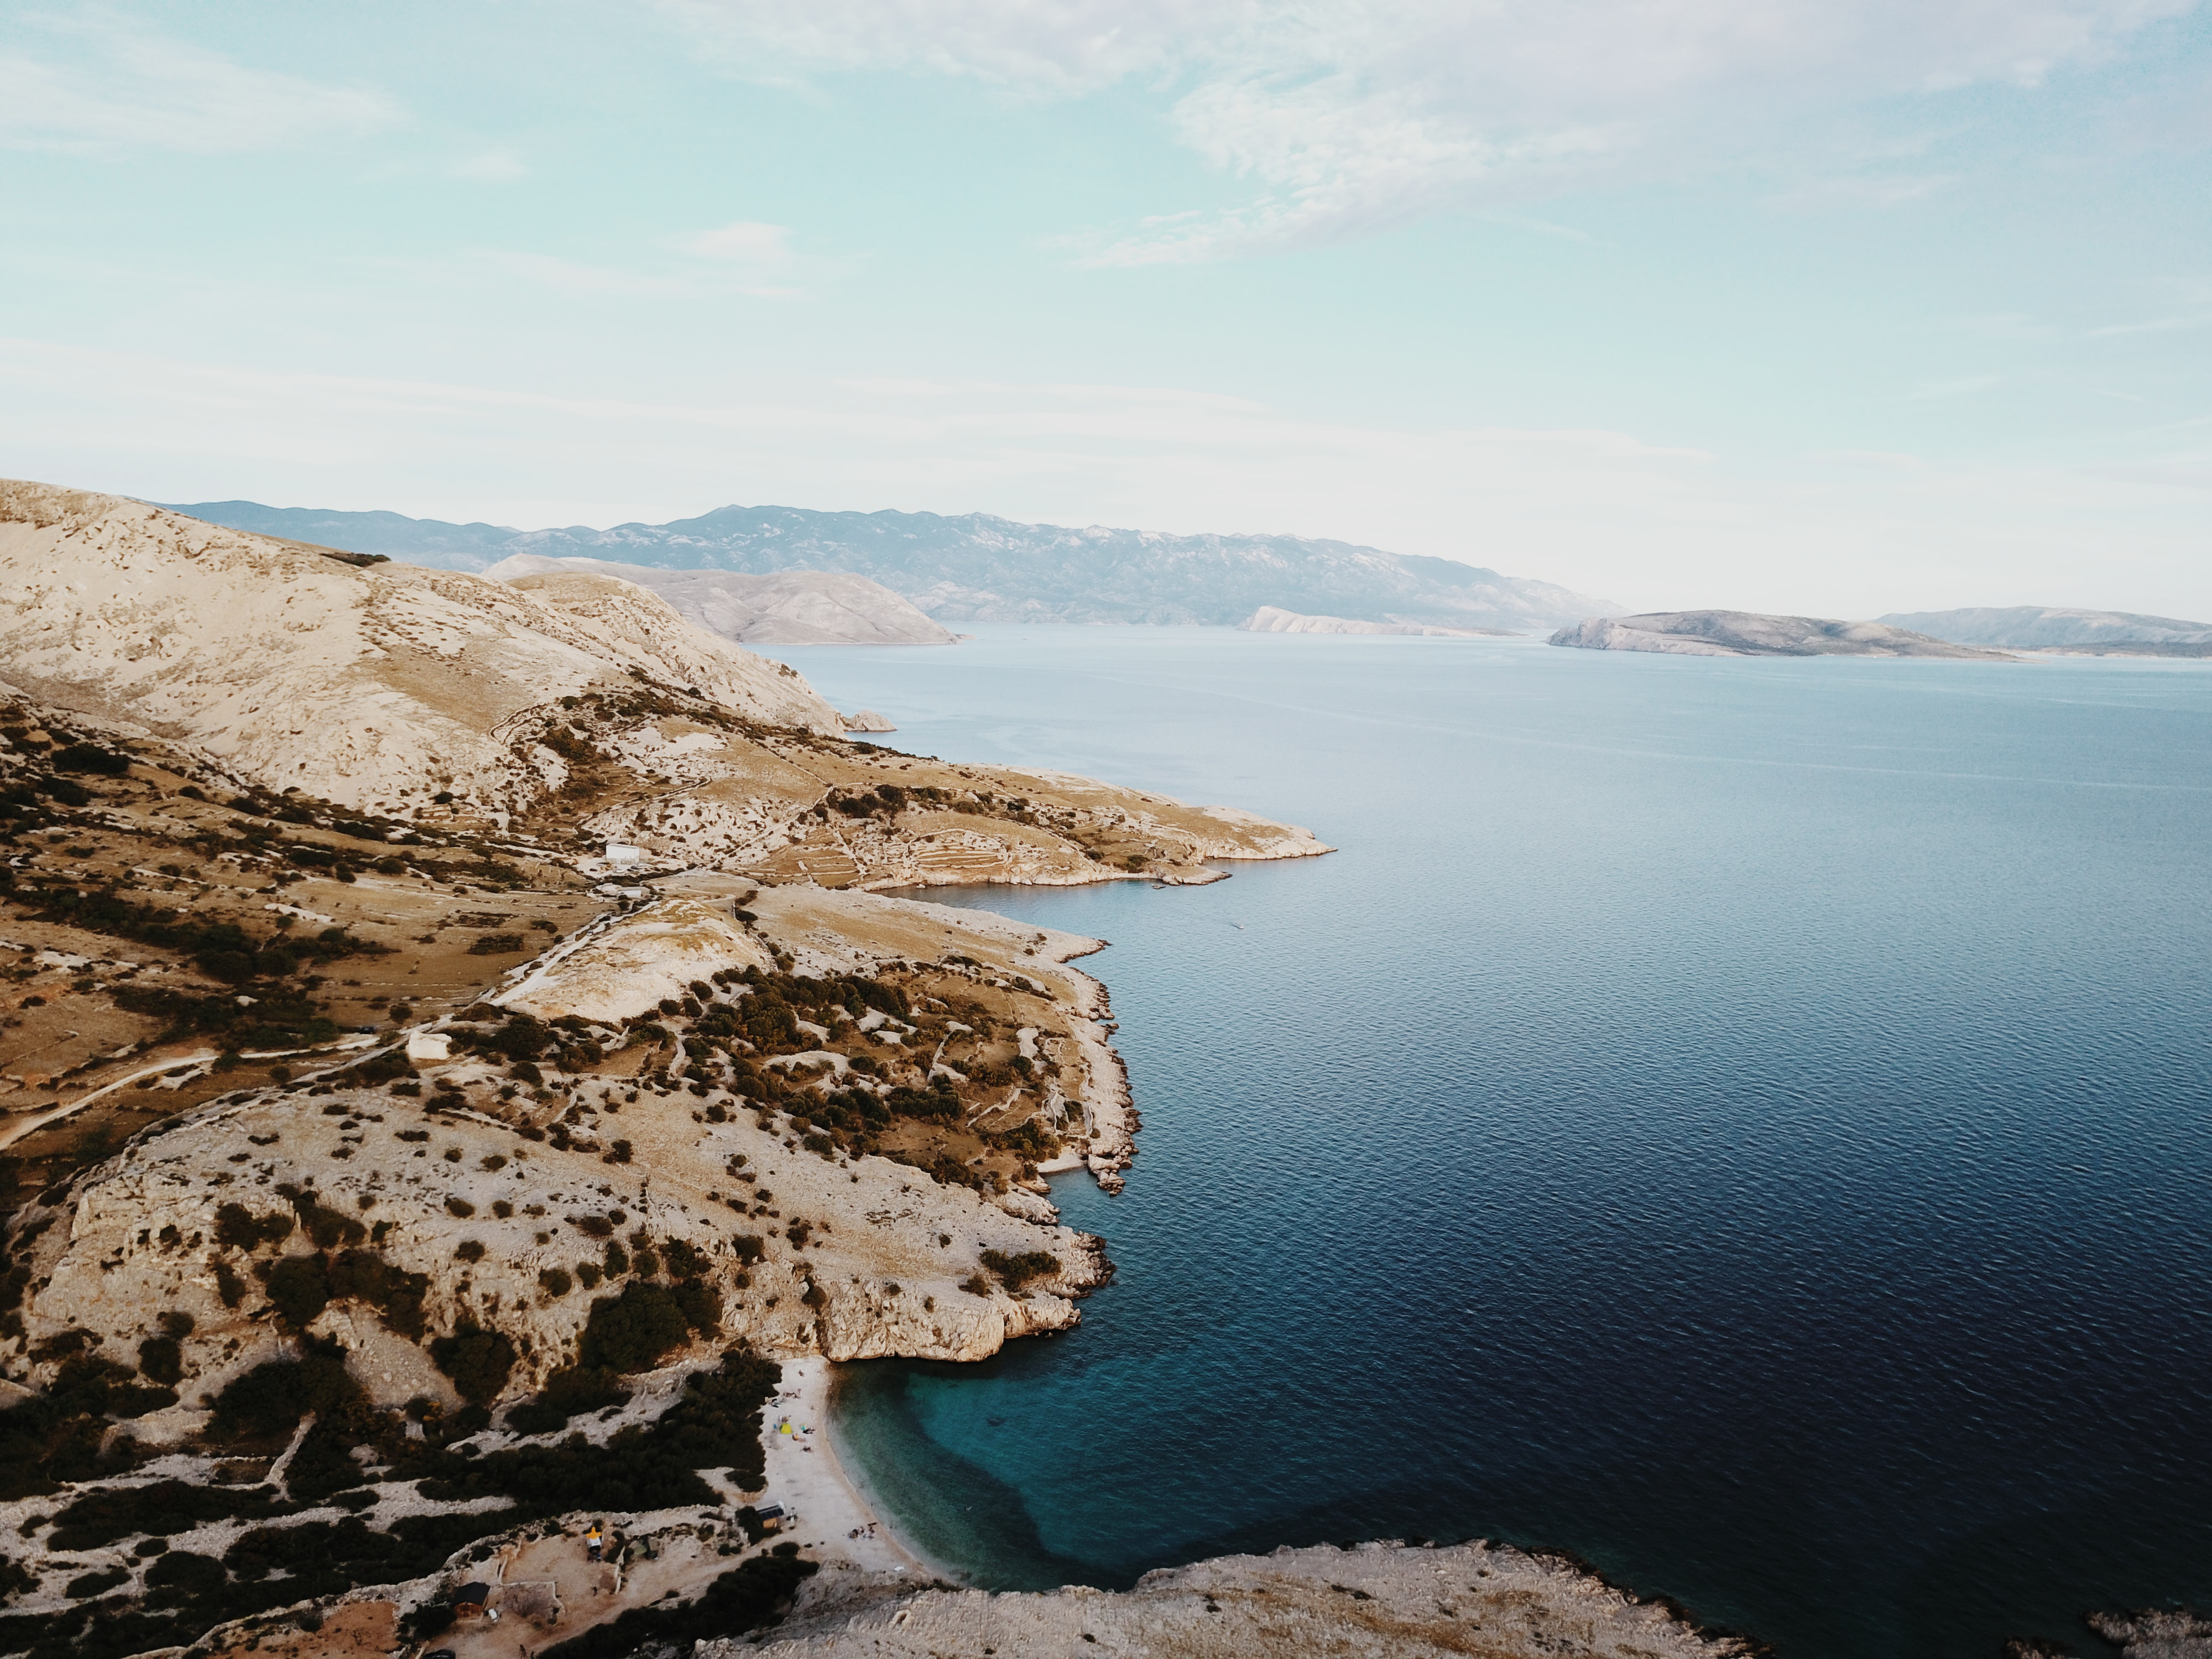 Drone view of a barren shoreline by the blue ocean at Stara Baška